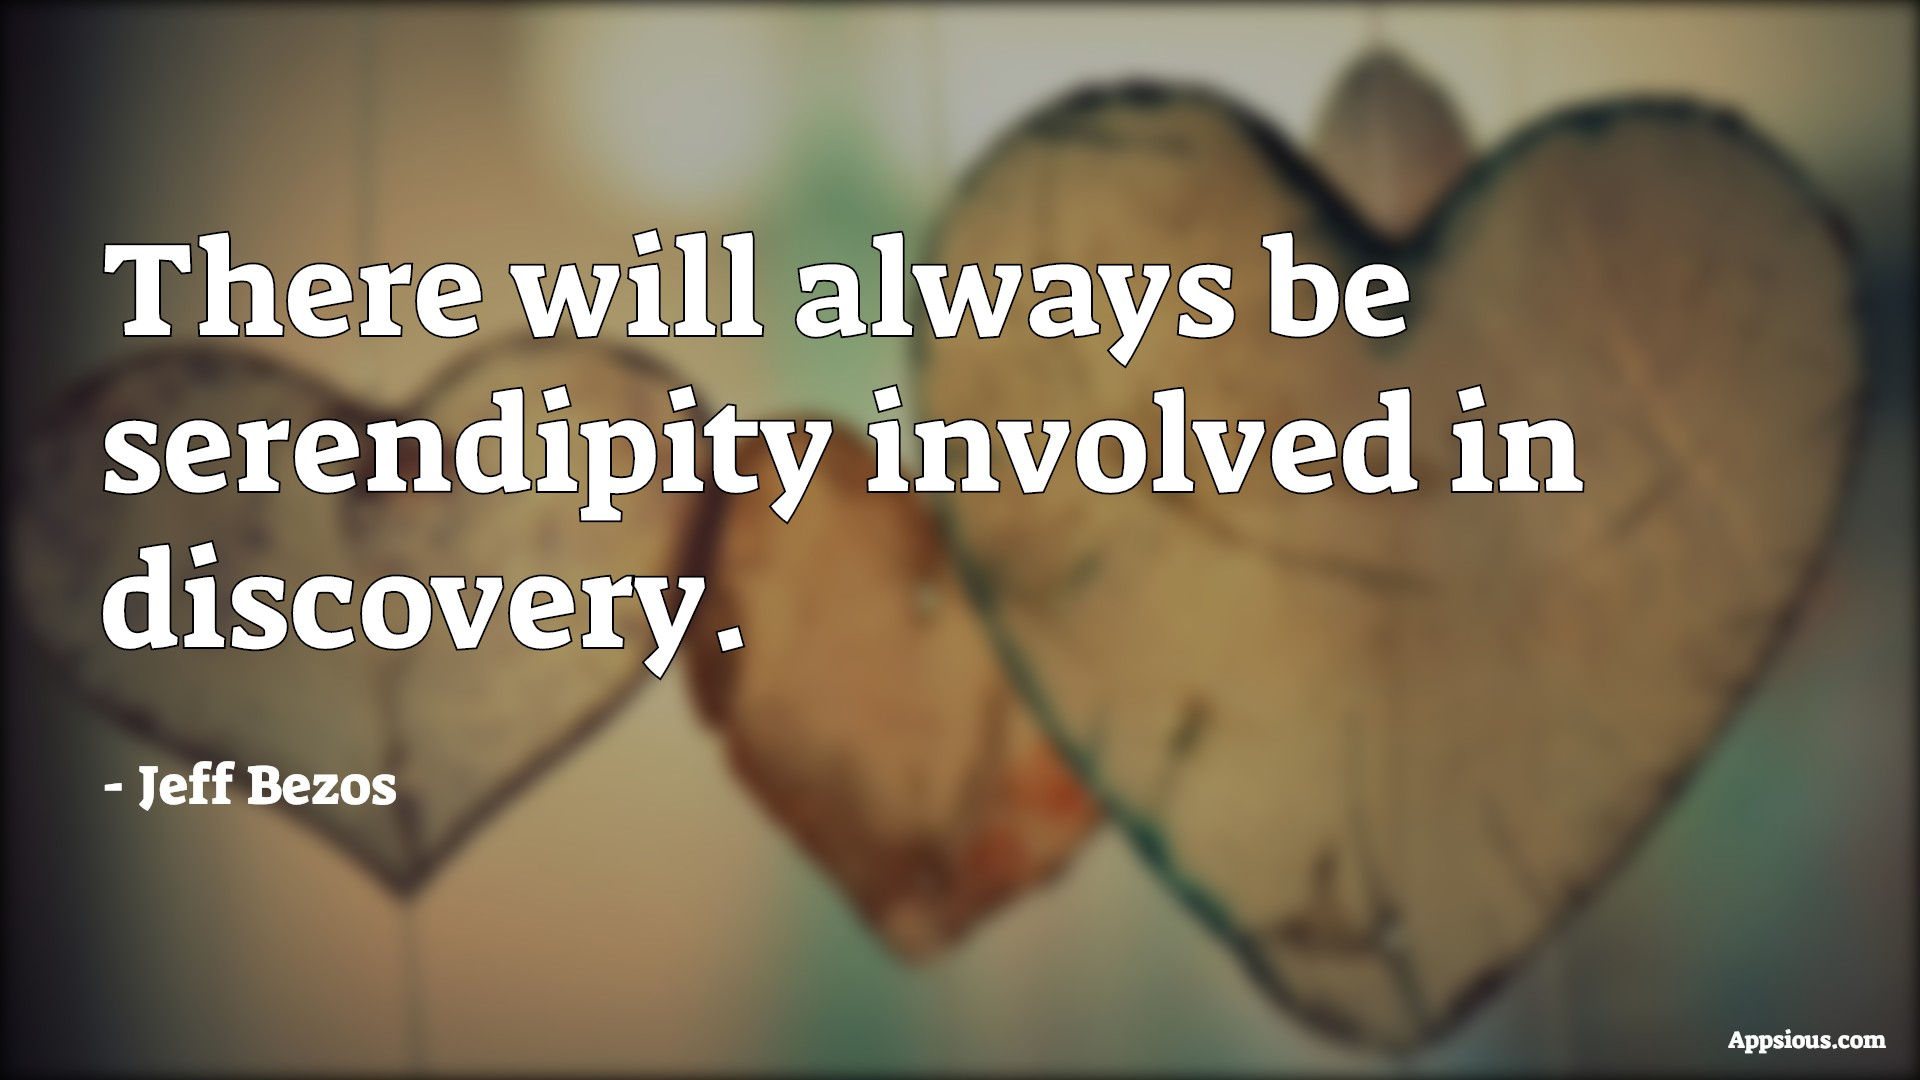 There will always be serendipity involved in discovery.